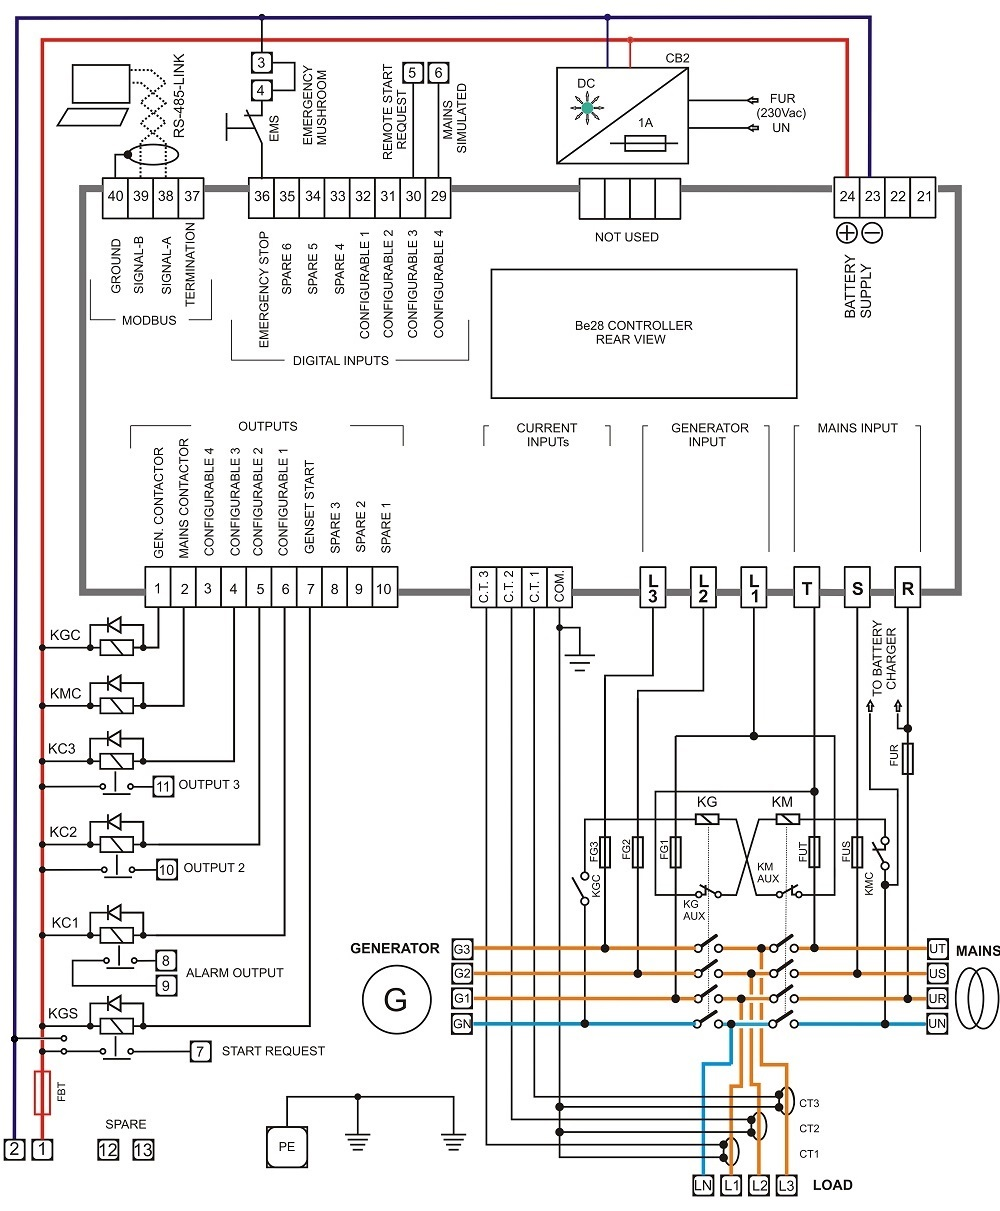 Wiring Diagram For Ats - Wiring Diagrams Digital